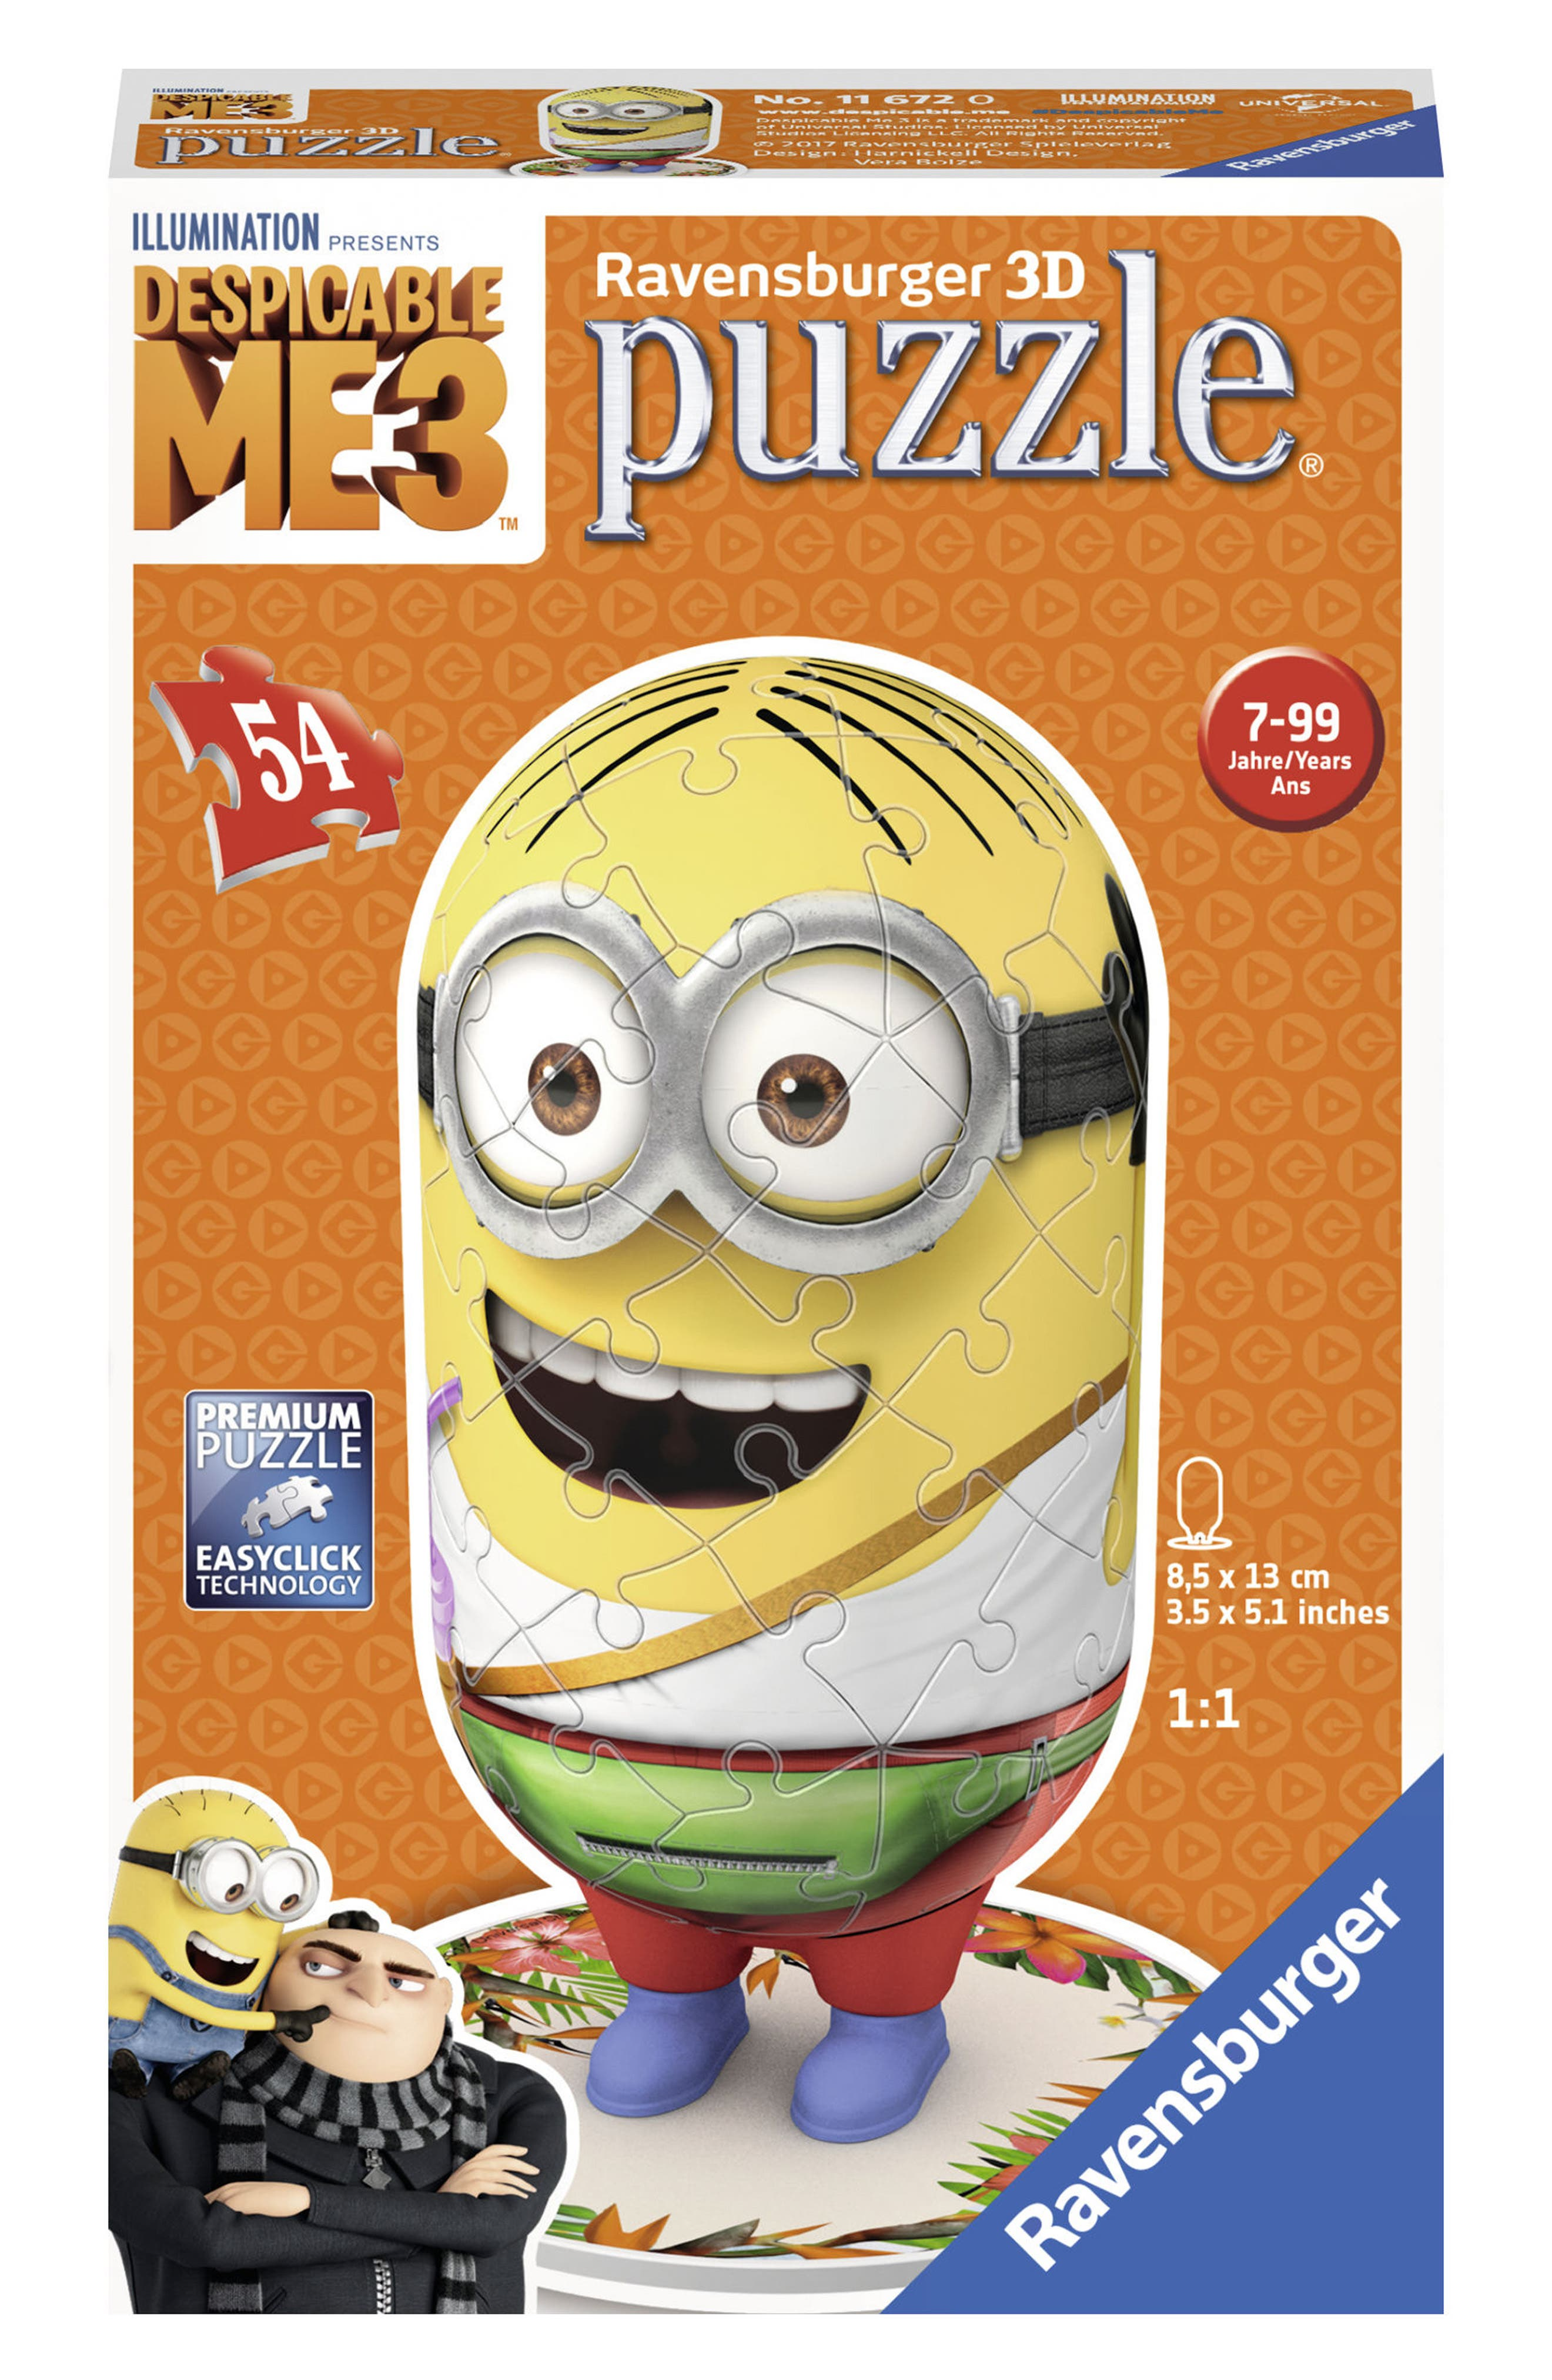 54-Piece Despicable Me 3 Minion 3D Puzzle,                         Main,                         color, 700